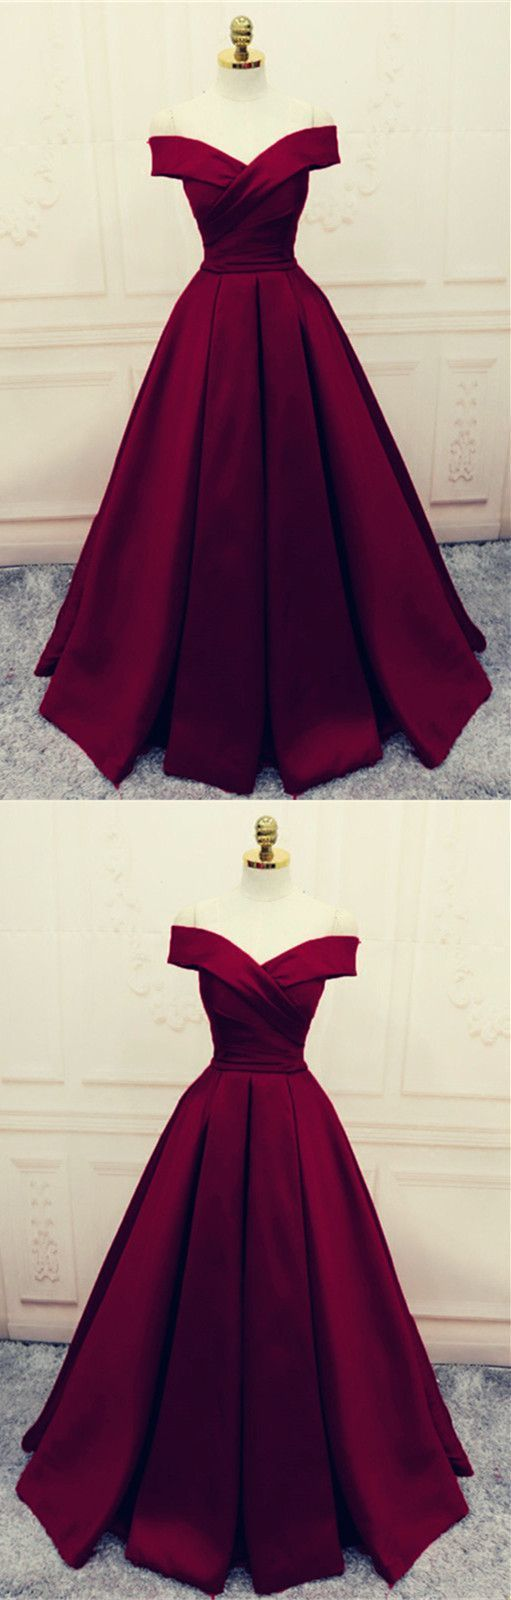 Satin off shoulder burgundy aline formal dress elegant party dress